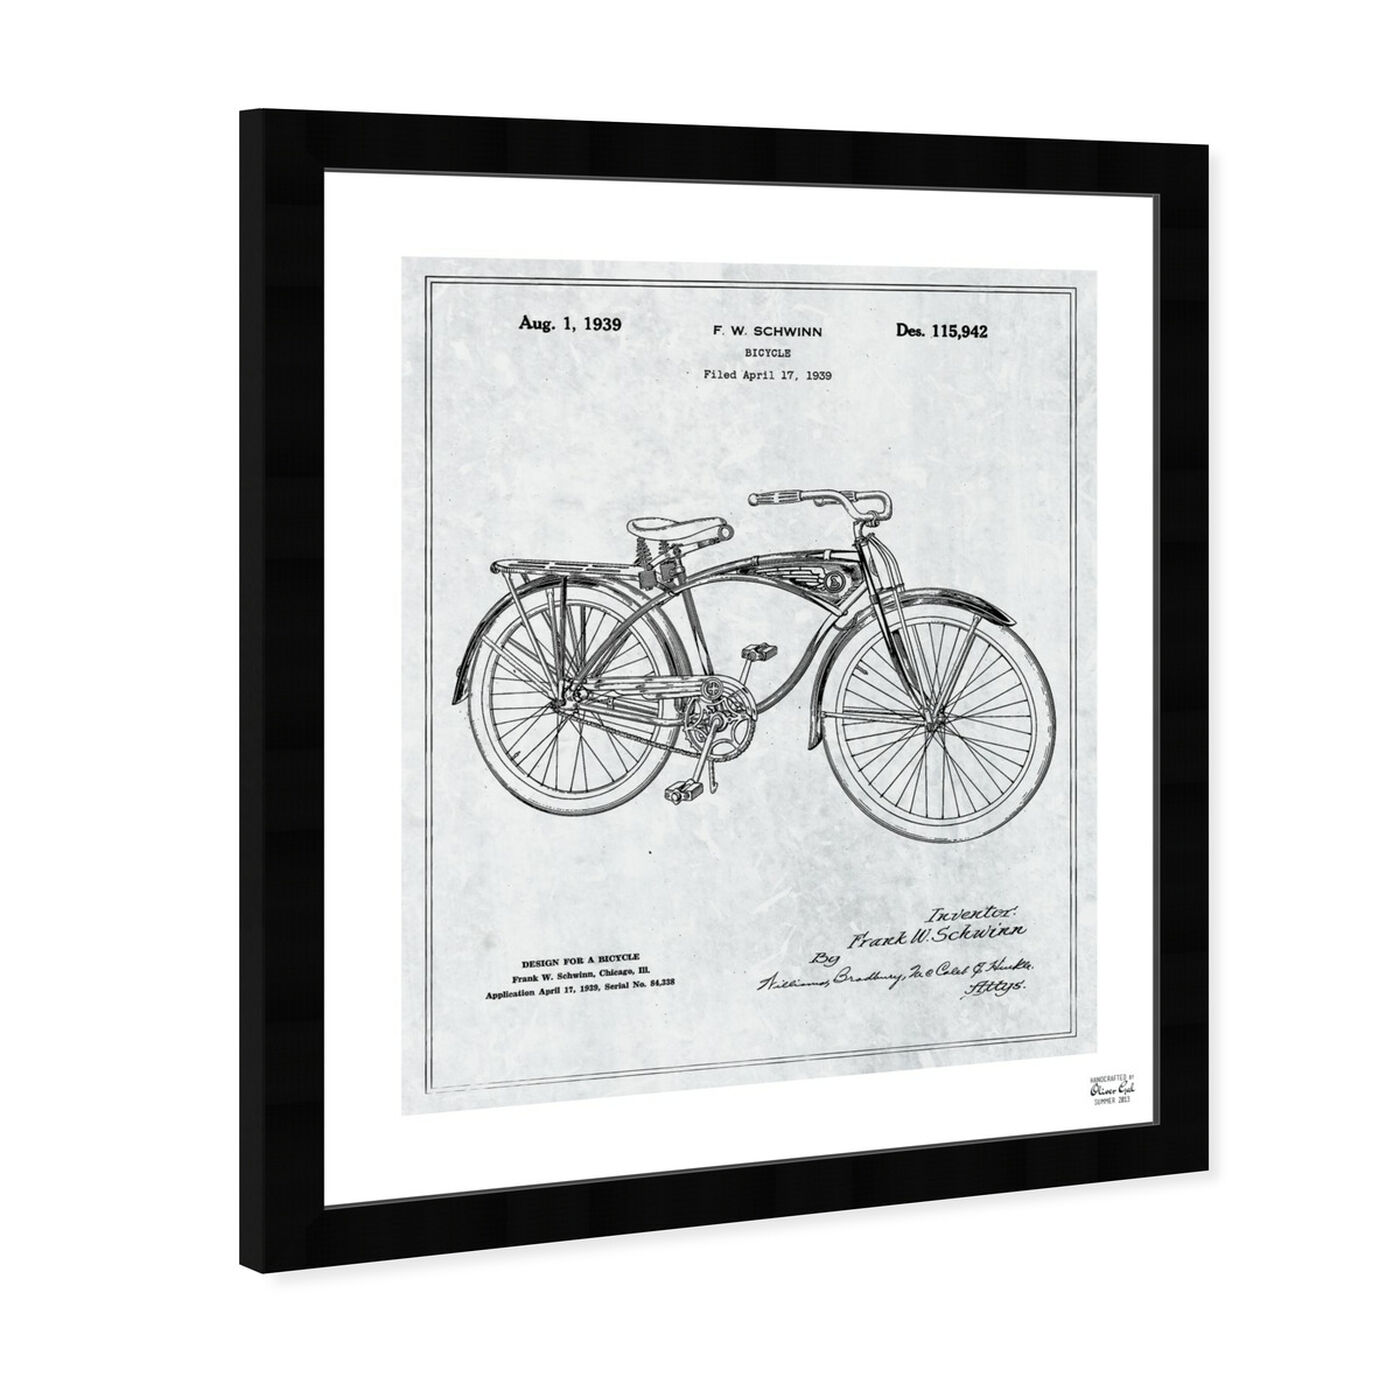 Angled view of Schwinn Bicycle 1939 Grey featuring transportation and bicycles art.